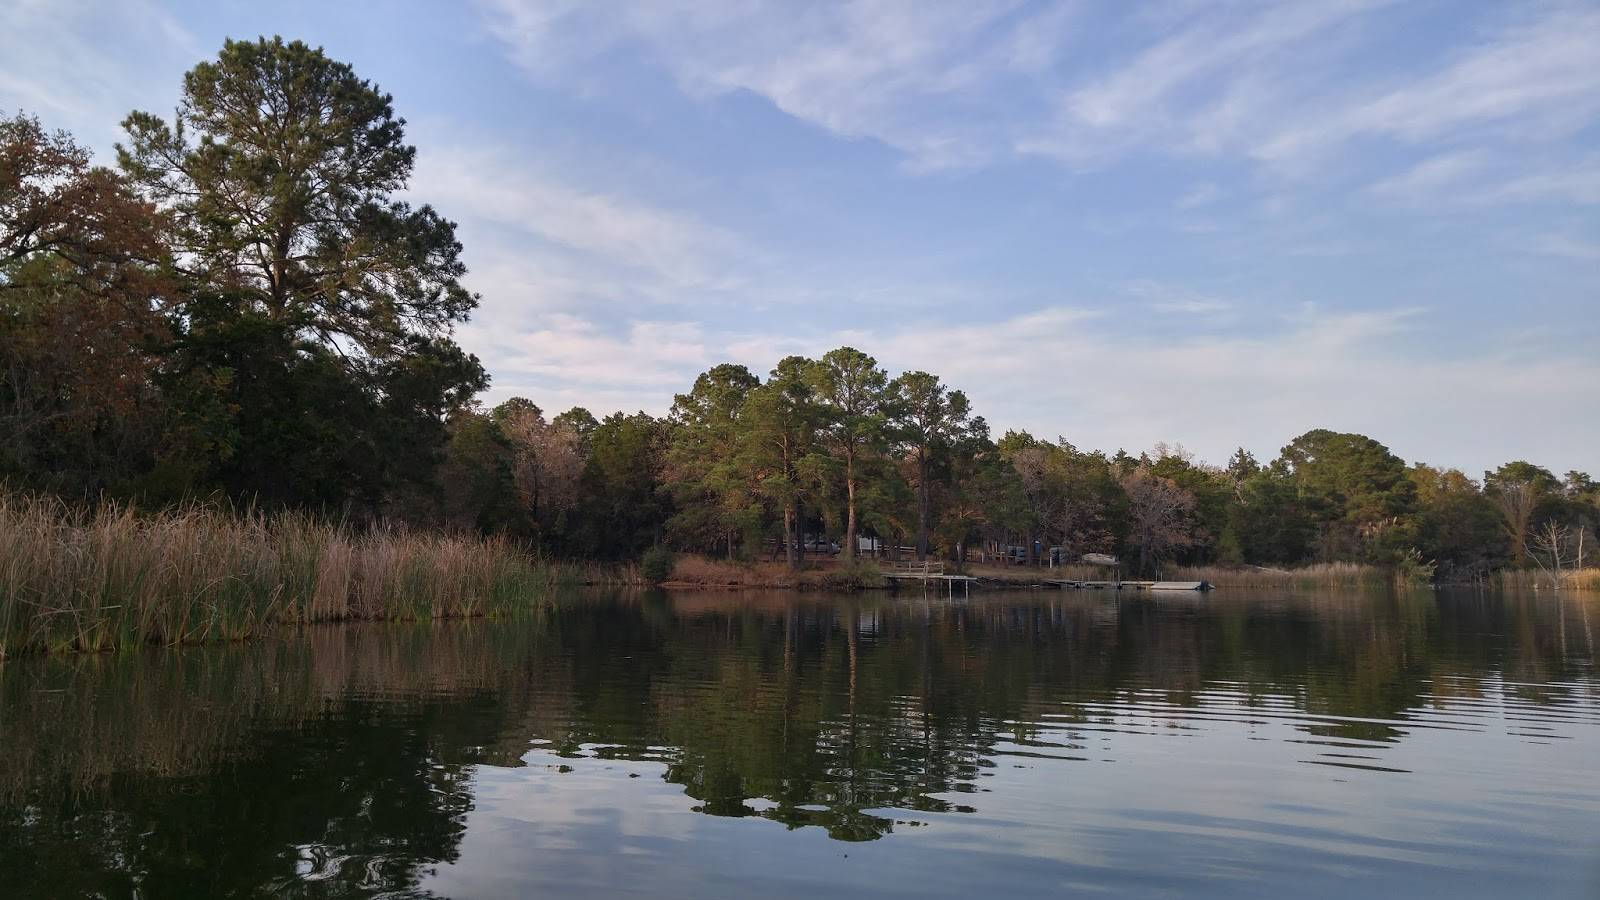 Kayak Fishing Lake Bastrop Shoreline with trees and beautiful calm water.